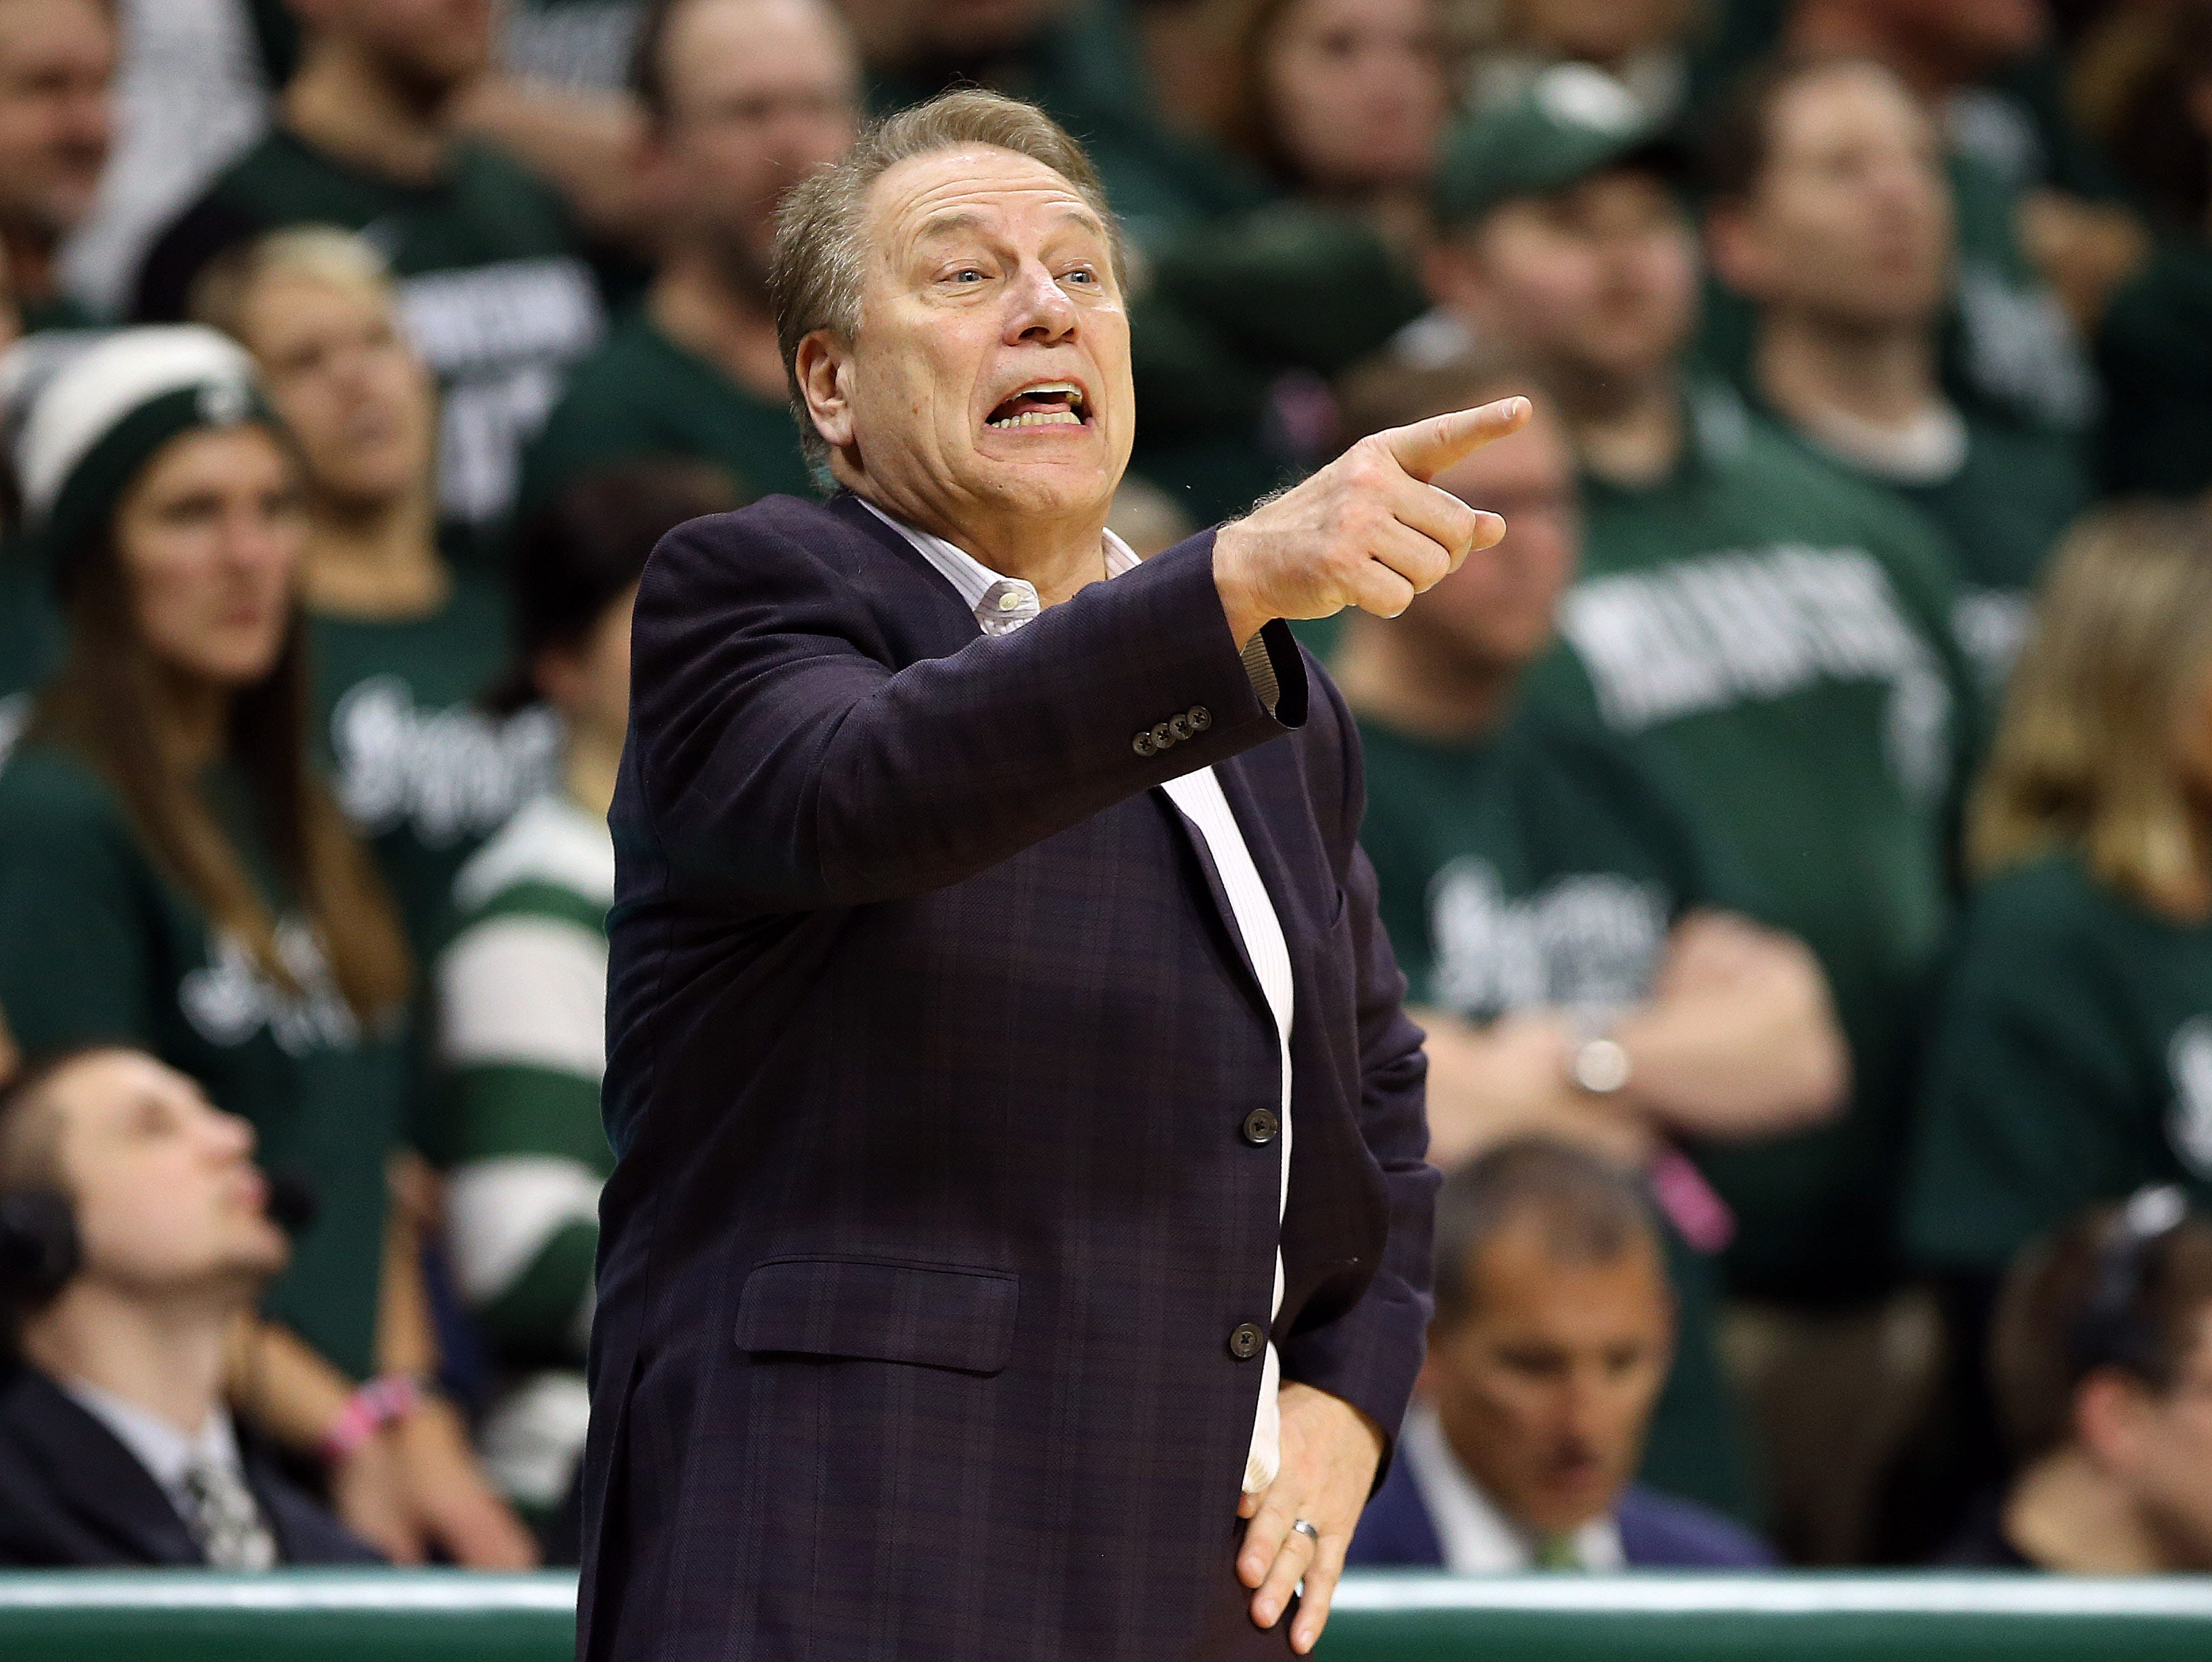 Mar 5, 2019; East Lansing, MI, USA; Michigan State Spartans head coach Tom Izzo gestures during the second half against the Nebraska Cornhuskers at the Breslin Center. Mandatory Credit: Mike Carter-USA TODAY Sports